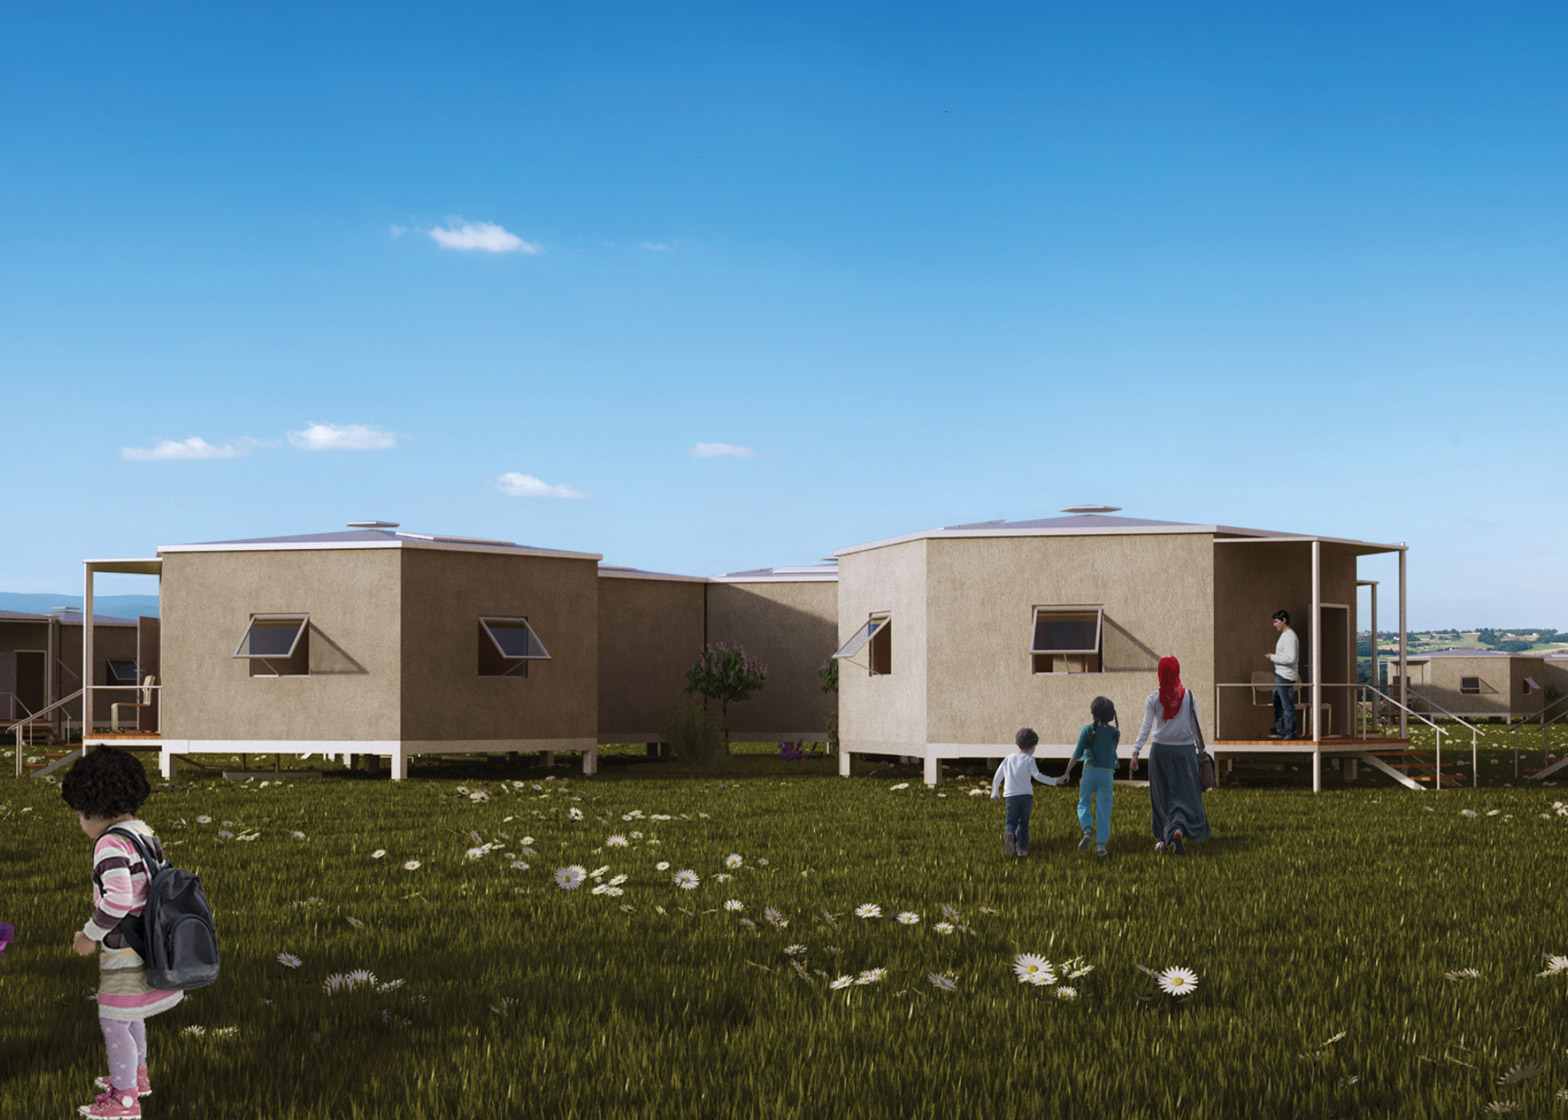 2 Of 5; Hex House By Architects For Society Refugee Crisis Housing Architecture  News